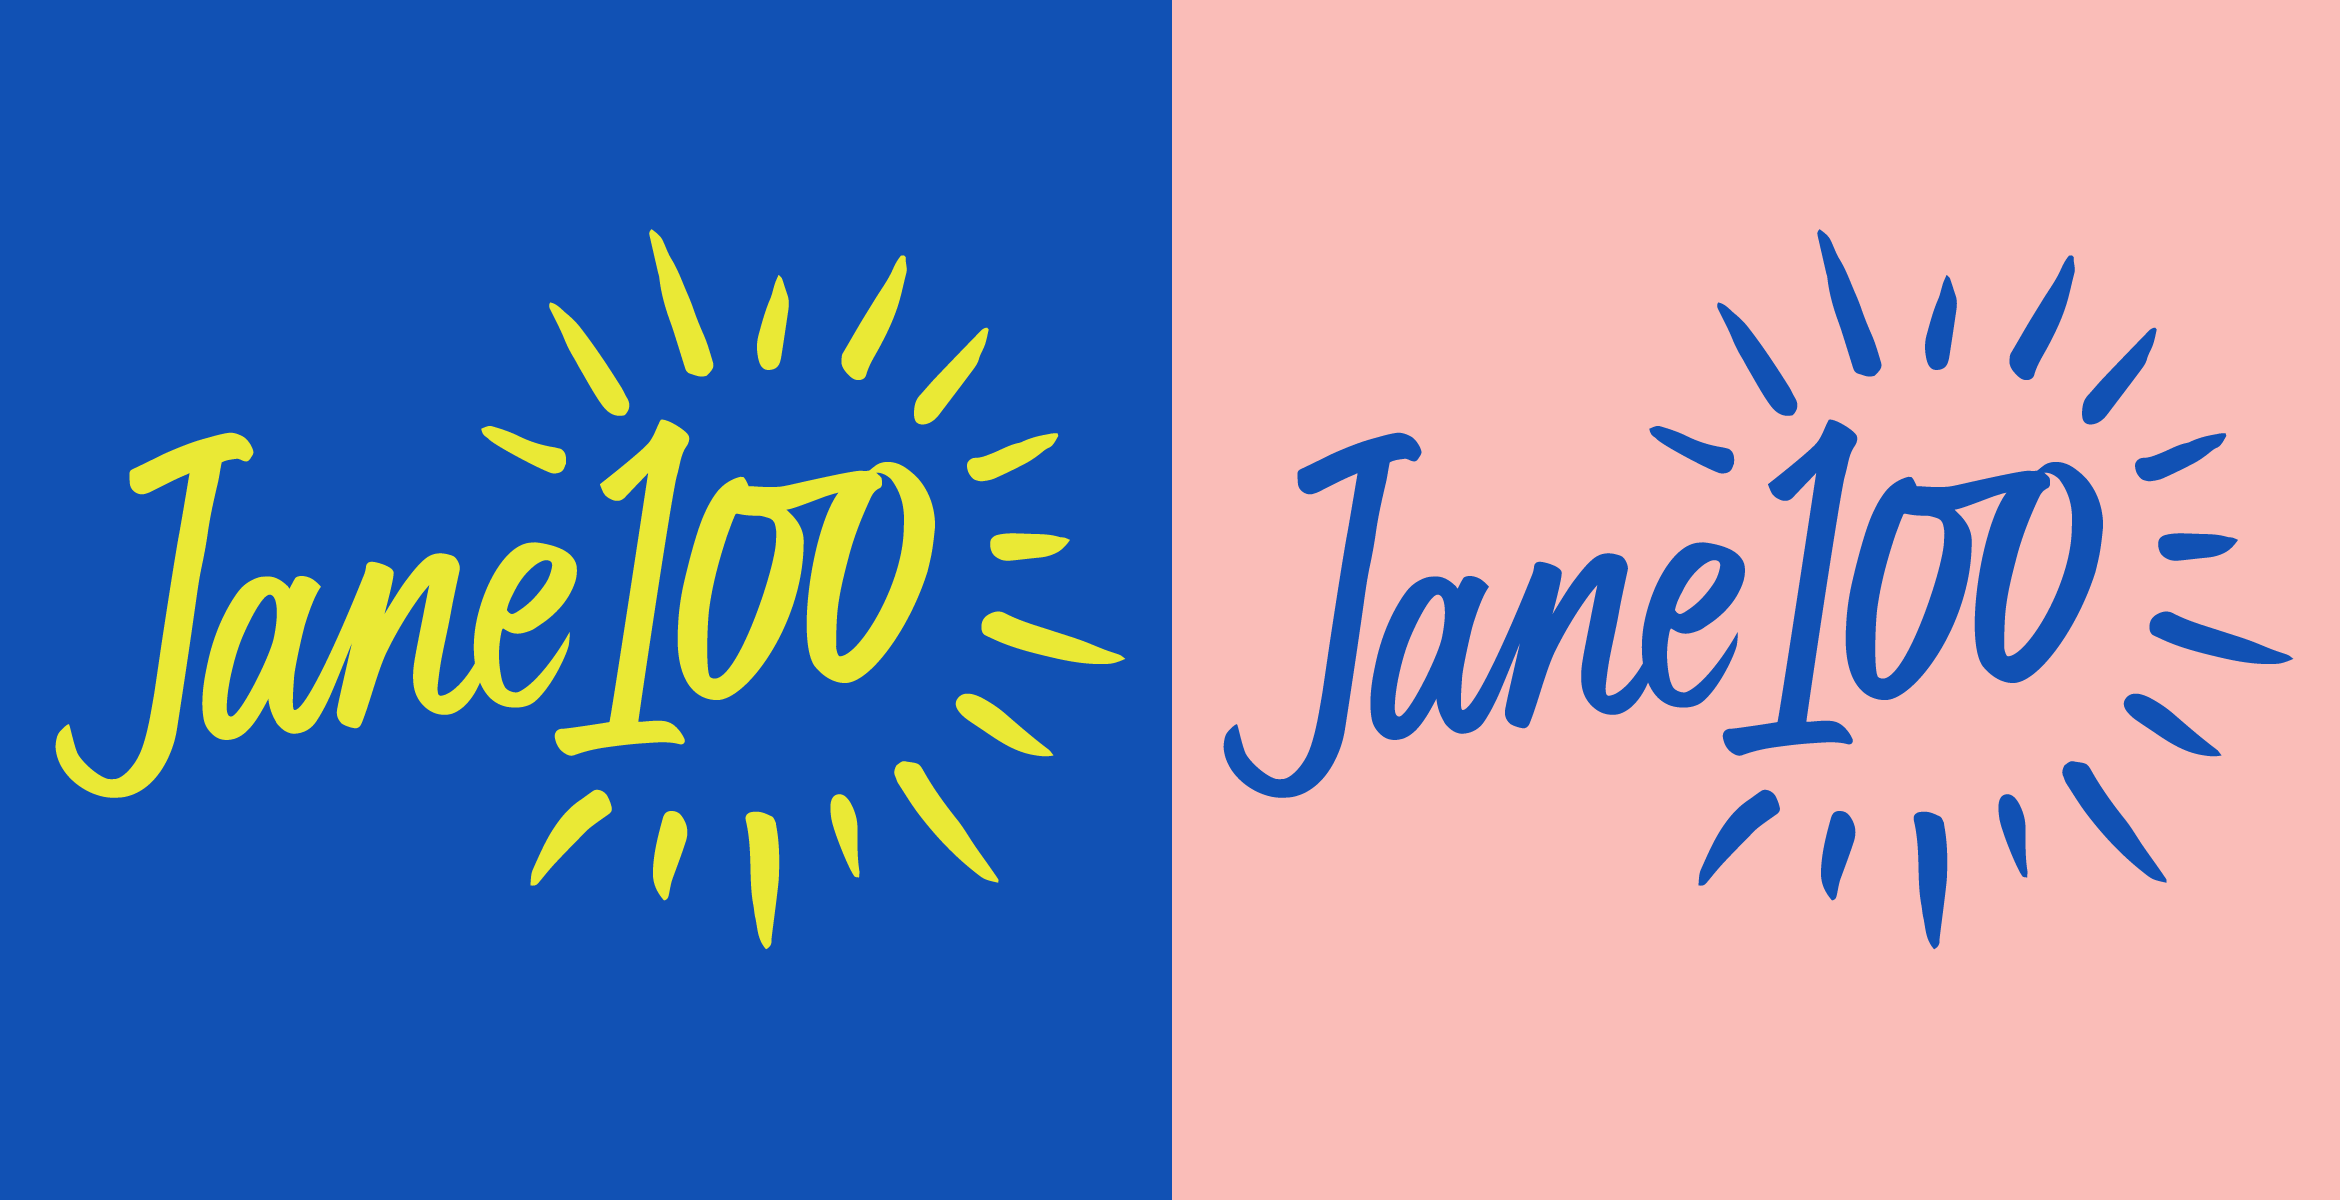 Two colour examples of the handdrawn Jane 100 logo.